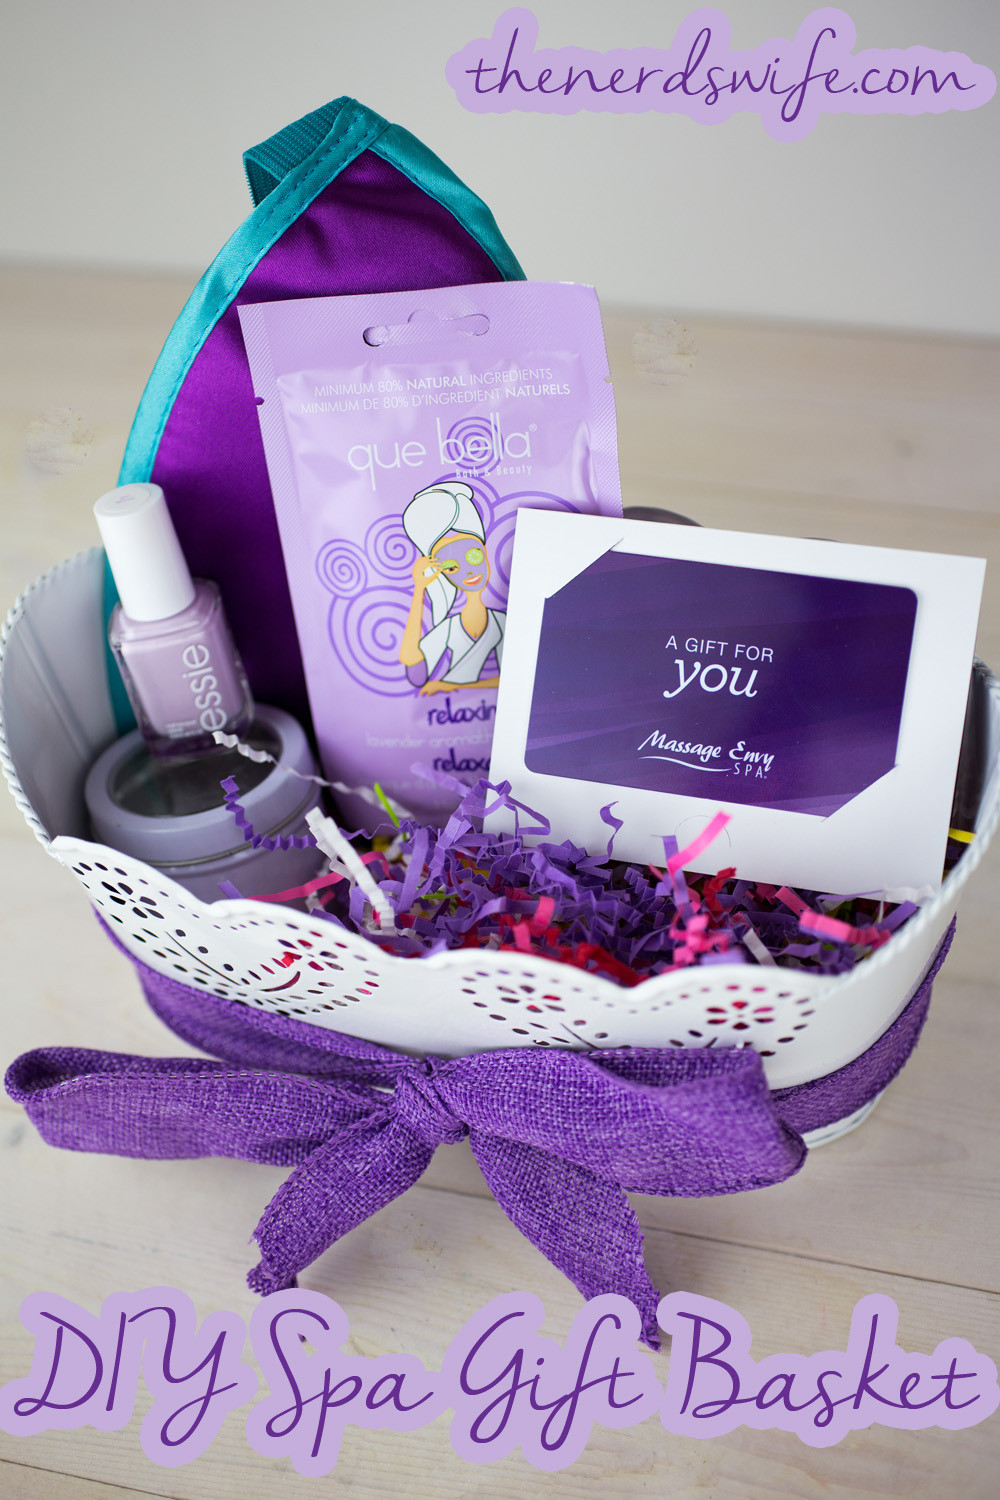 Best ideas about DIY Spa Gift Baskets . Save or Pin DIY Spa Gift Basket The Nerd s Wife Now.